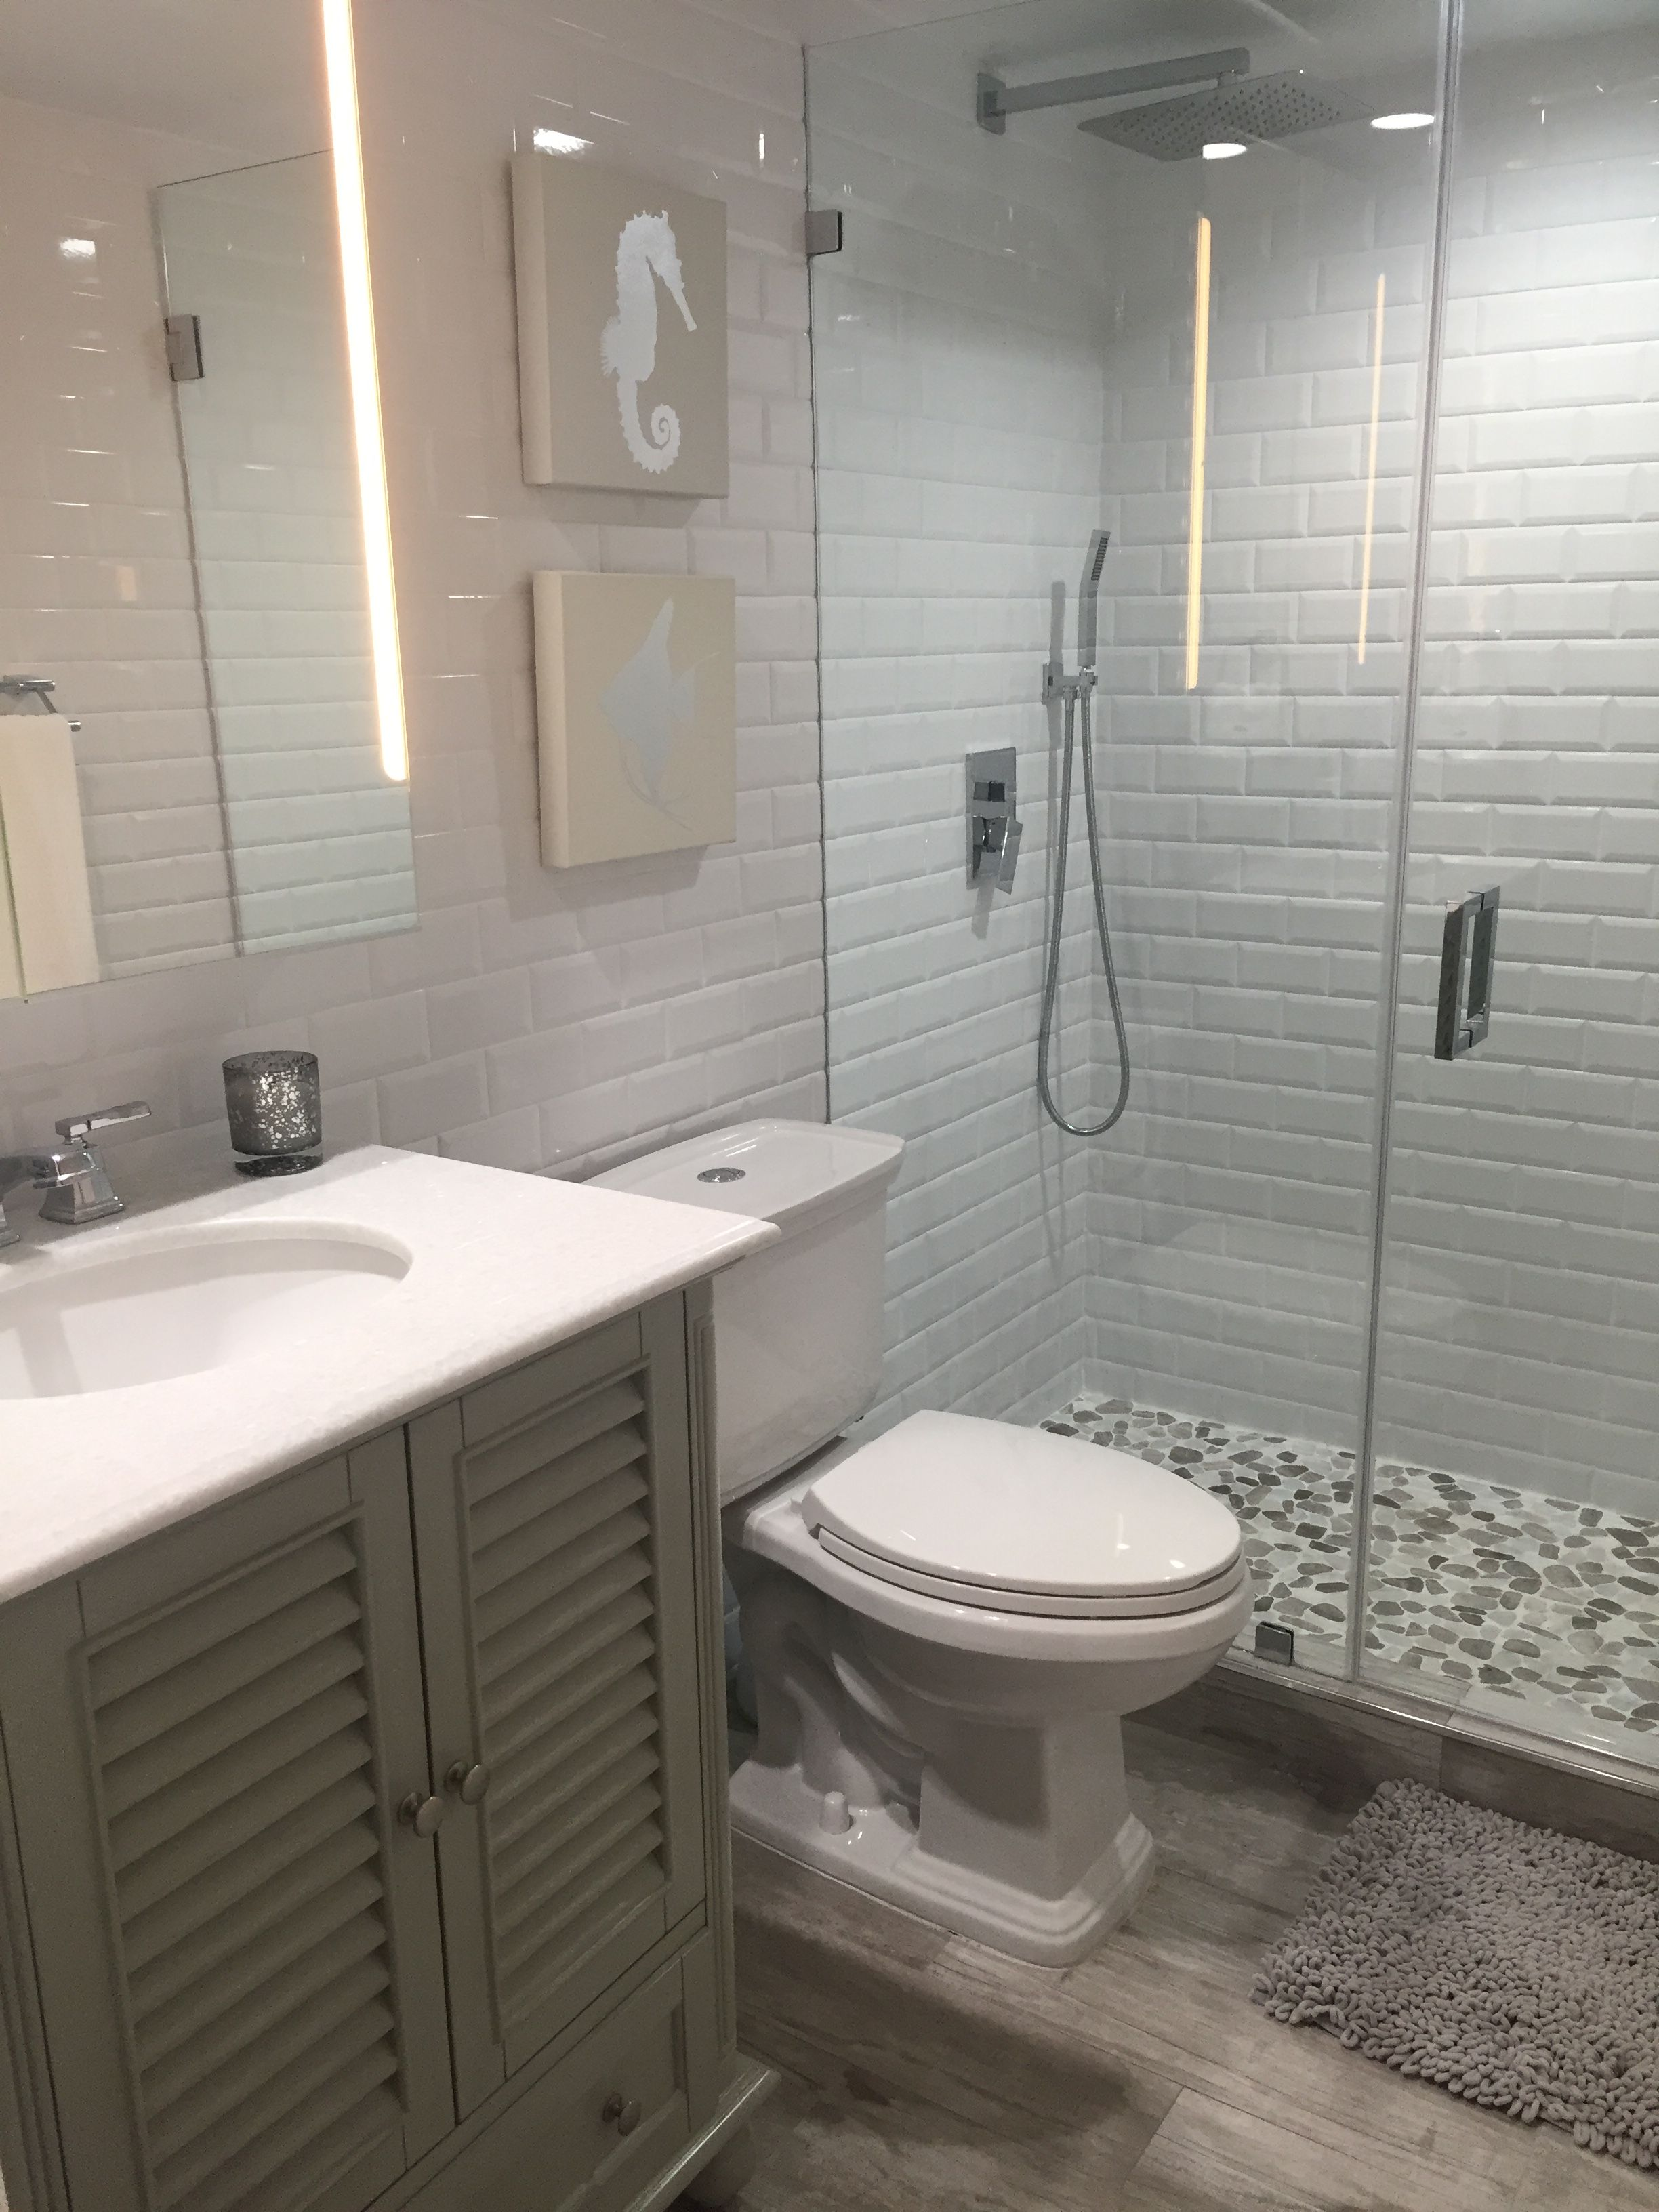 Reno bathroom remodel contractors, Reno bathroom remodeling, Reno bathroom remodeling quote.